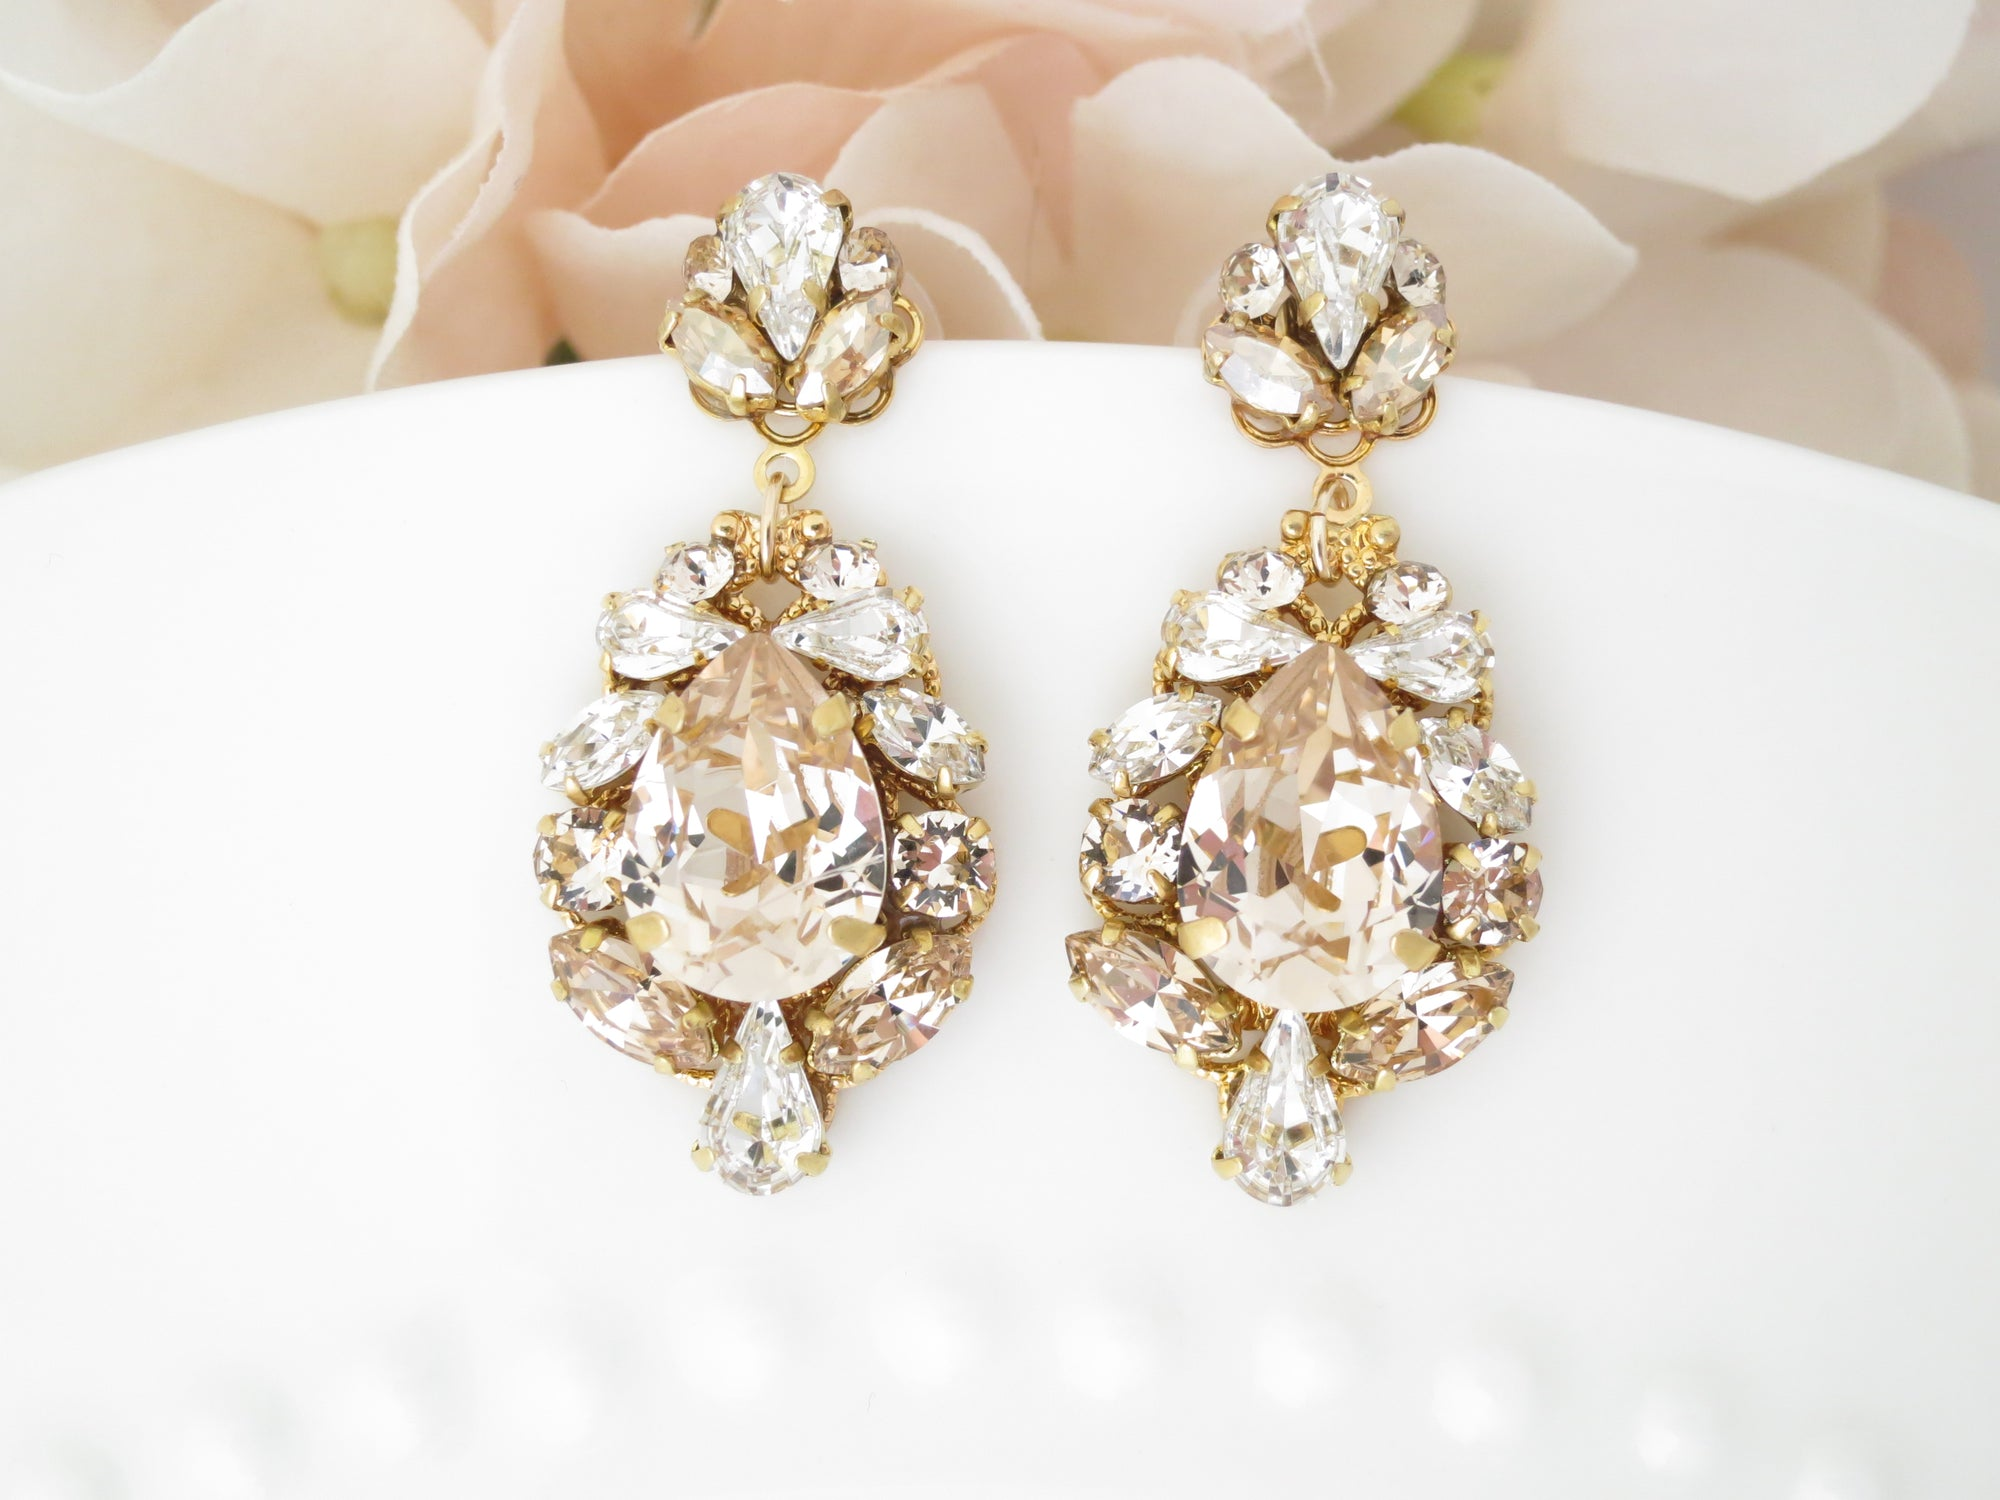 HAMPTON:  Champagne Teardrop Wedding Earrings - BlingBaddaBoom - Minimalist, Vintage, Modern Wedding and Bridal Jewelry